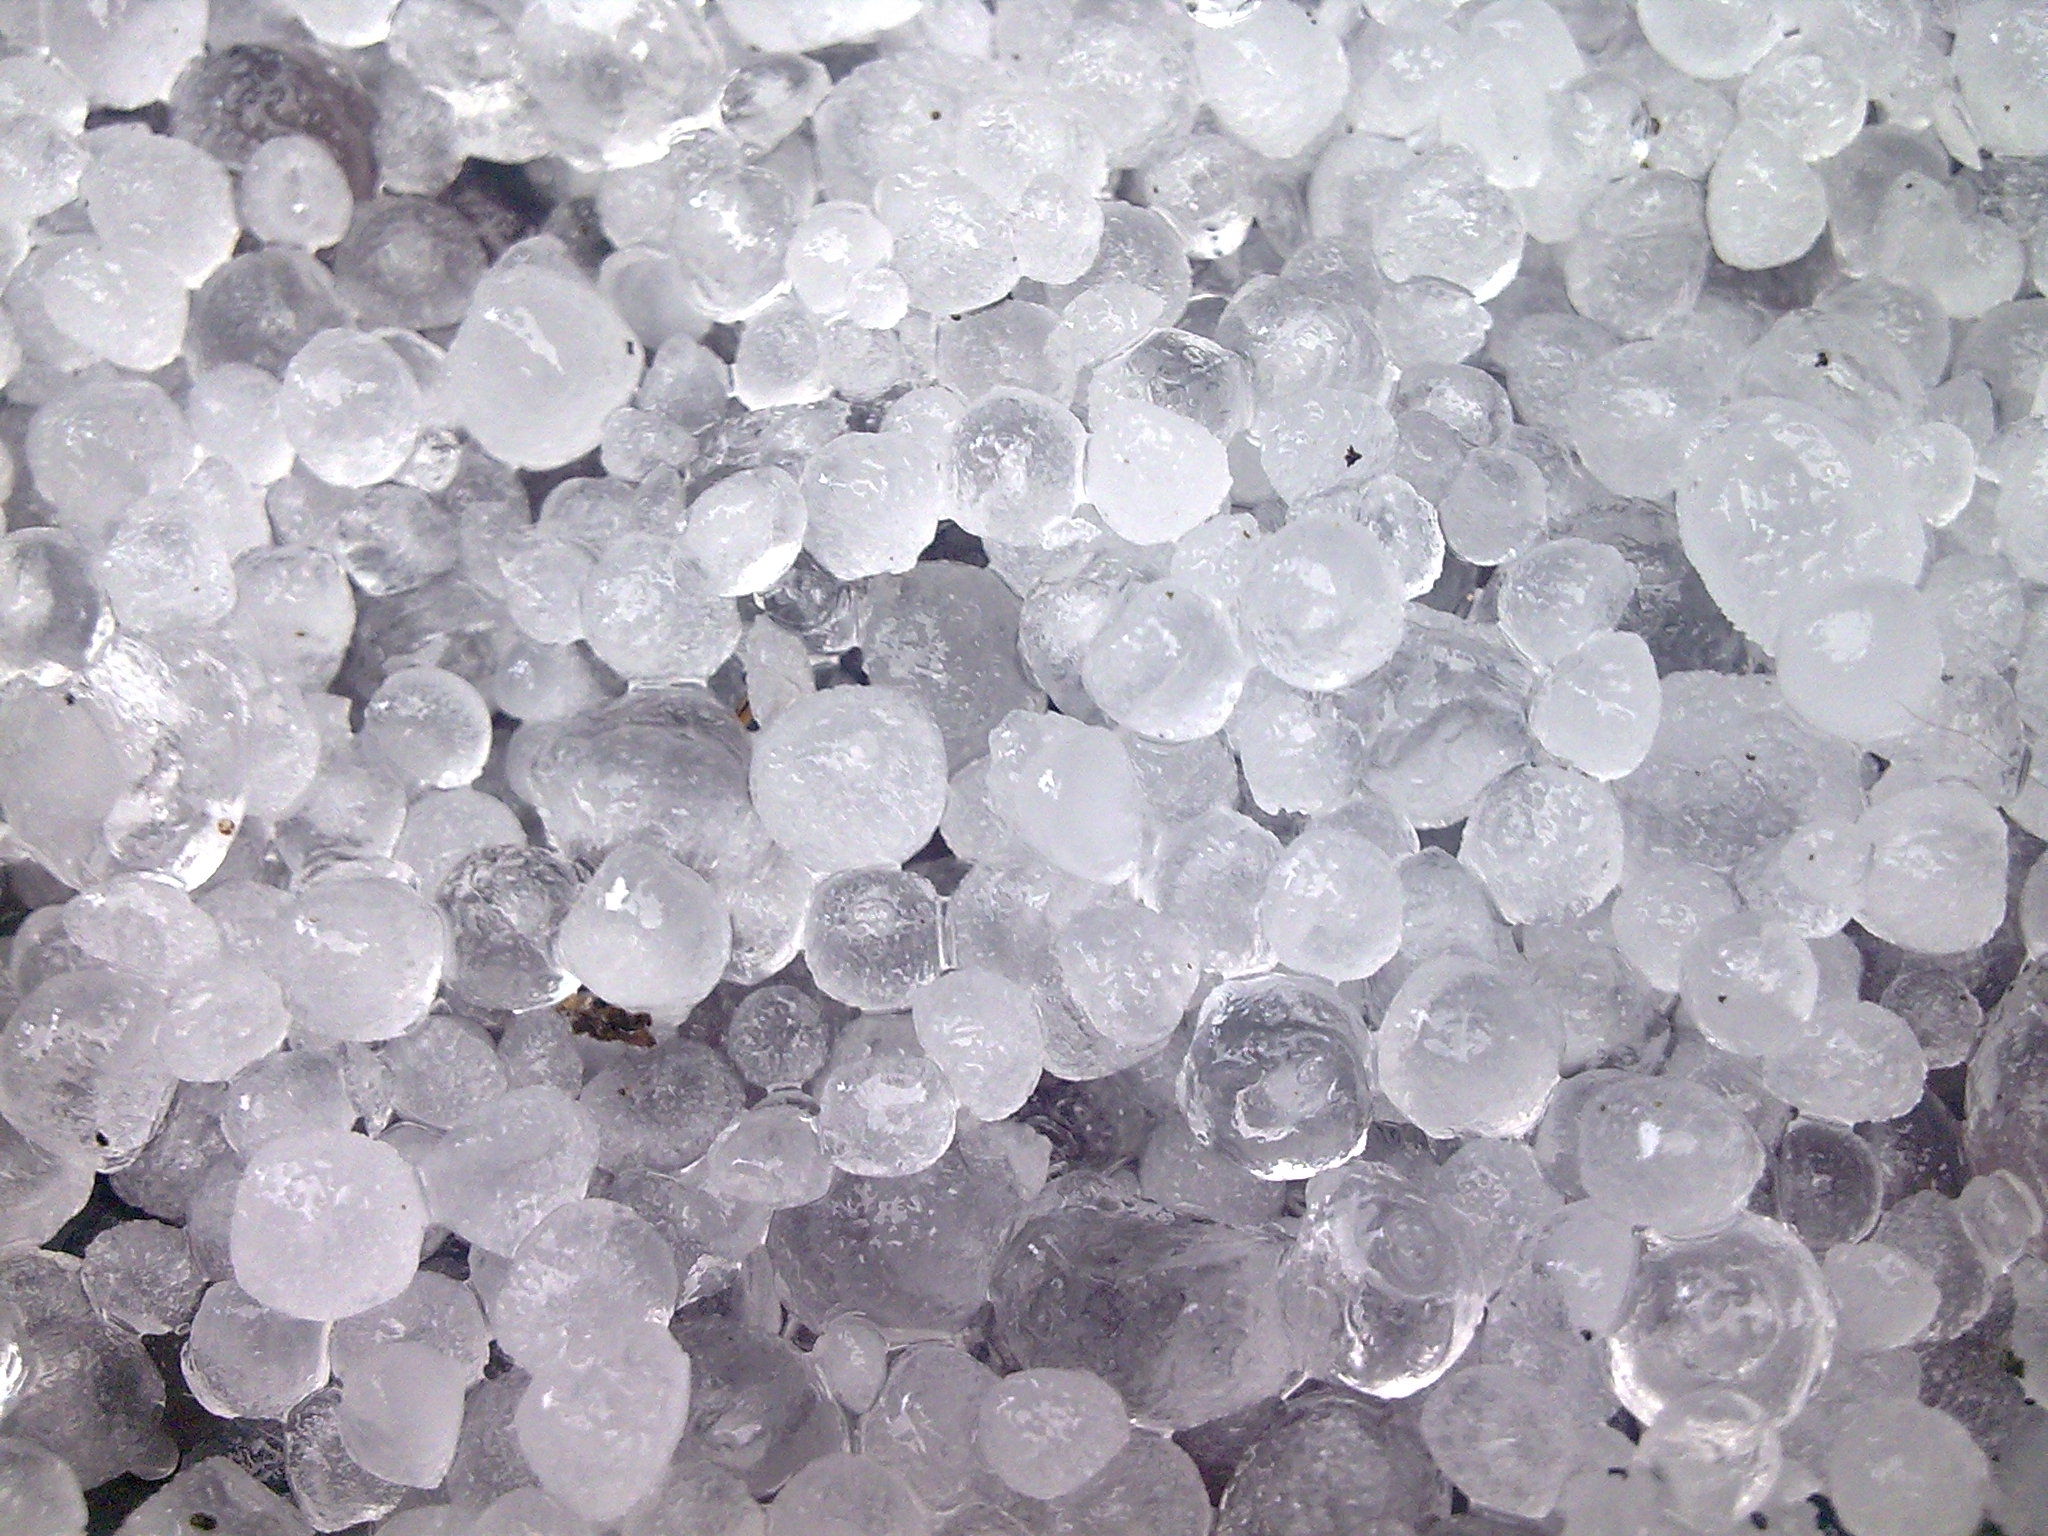 Issues With Processing Hail Damage In The PDR Business (Part Two)